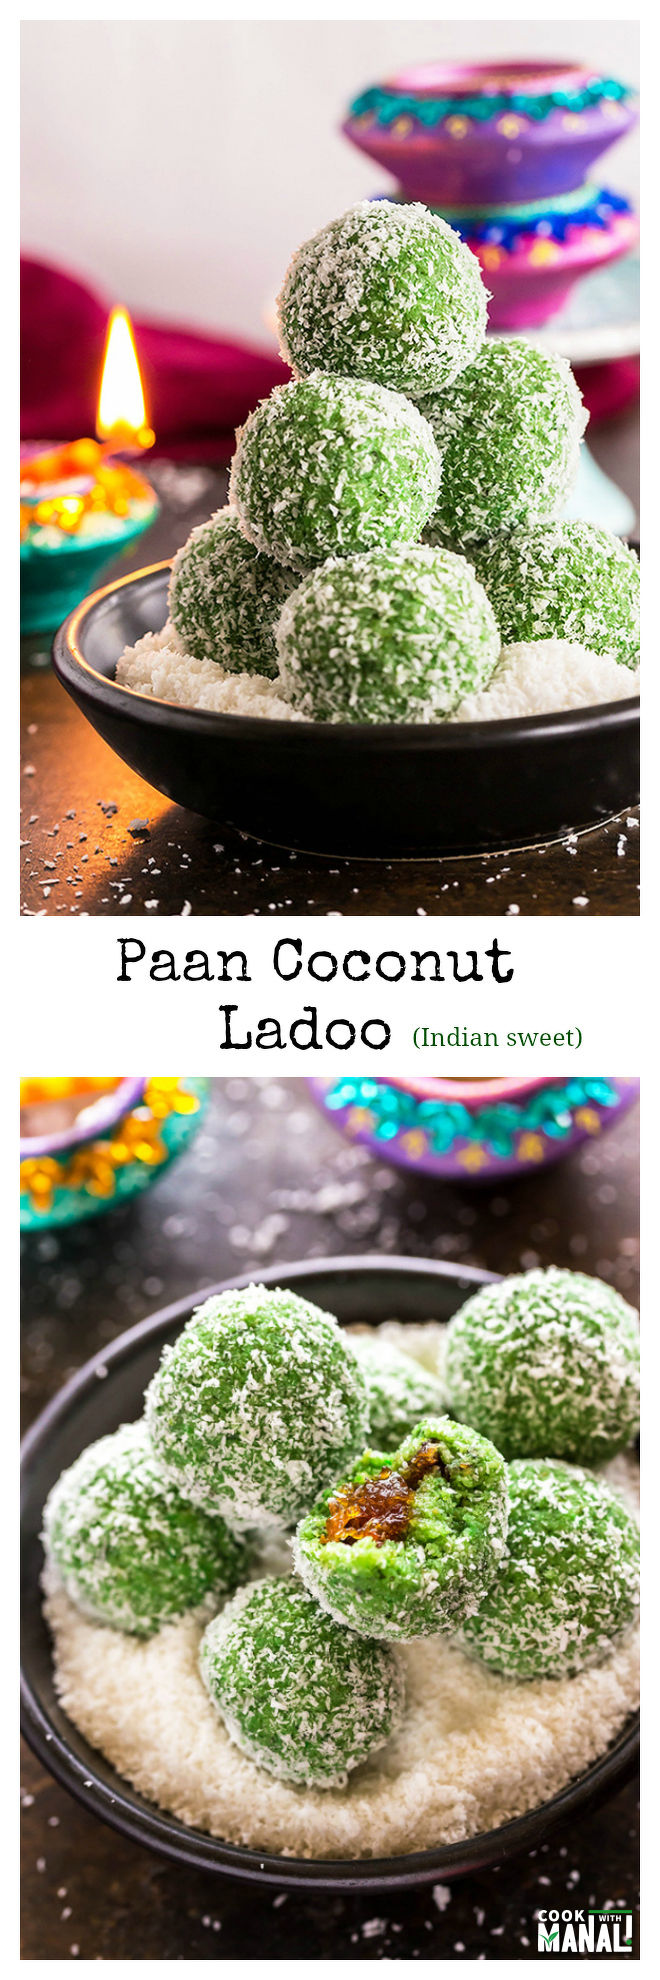 paan-coconut-ladoo-collage